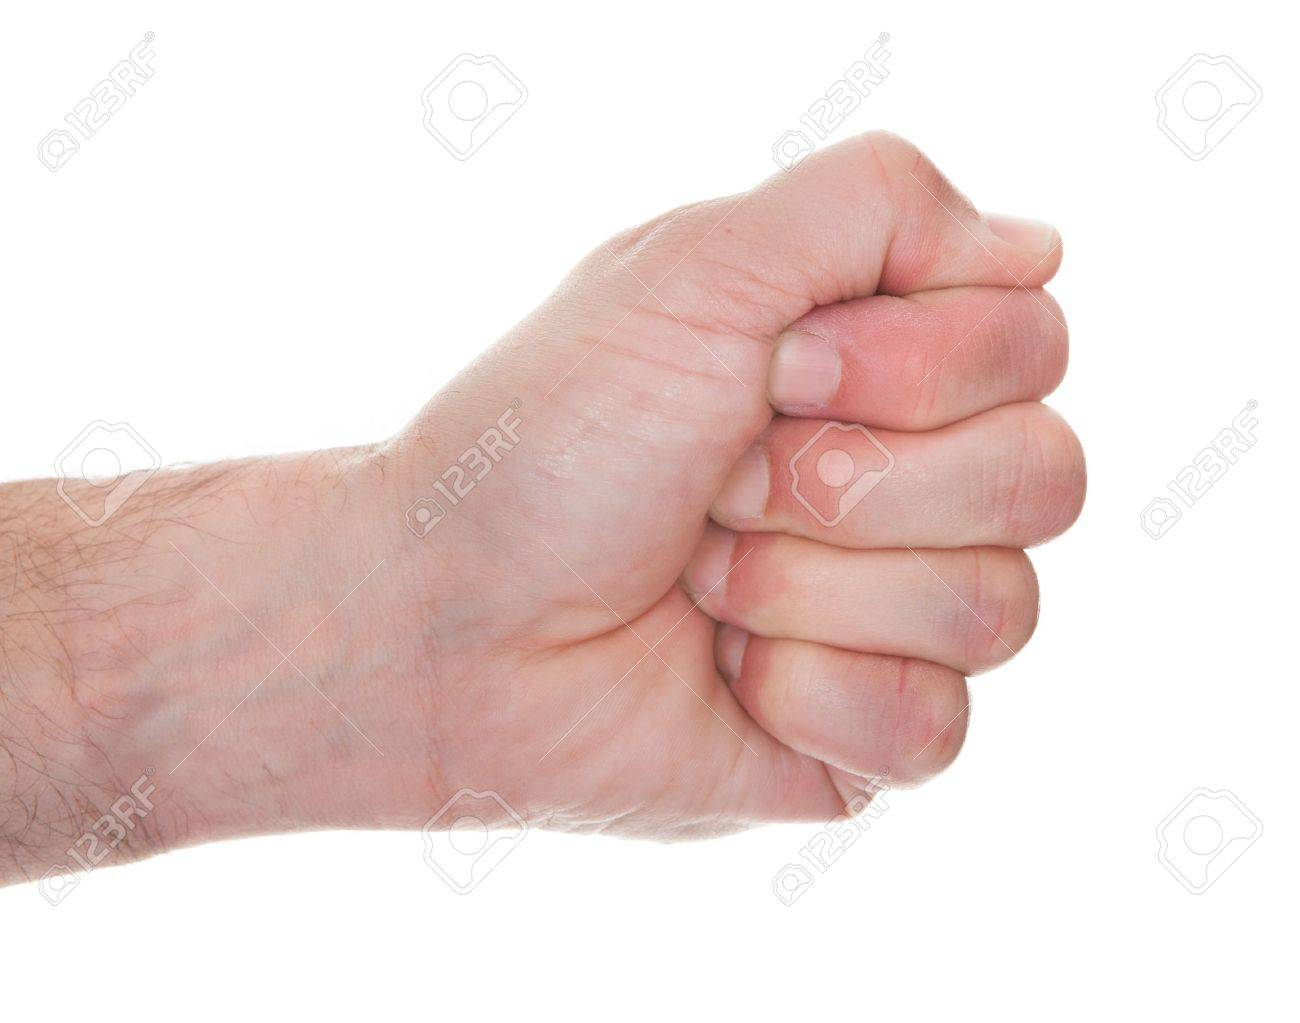 Close-up Man's Hand Clenching His Fist Over White Background Stock Photo - 20614929